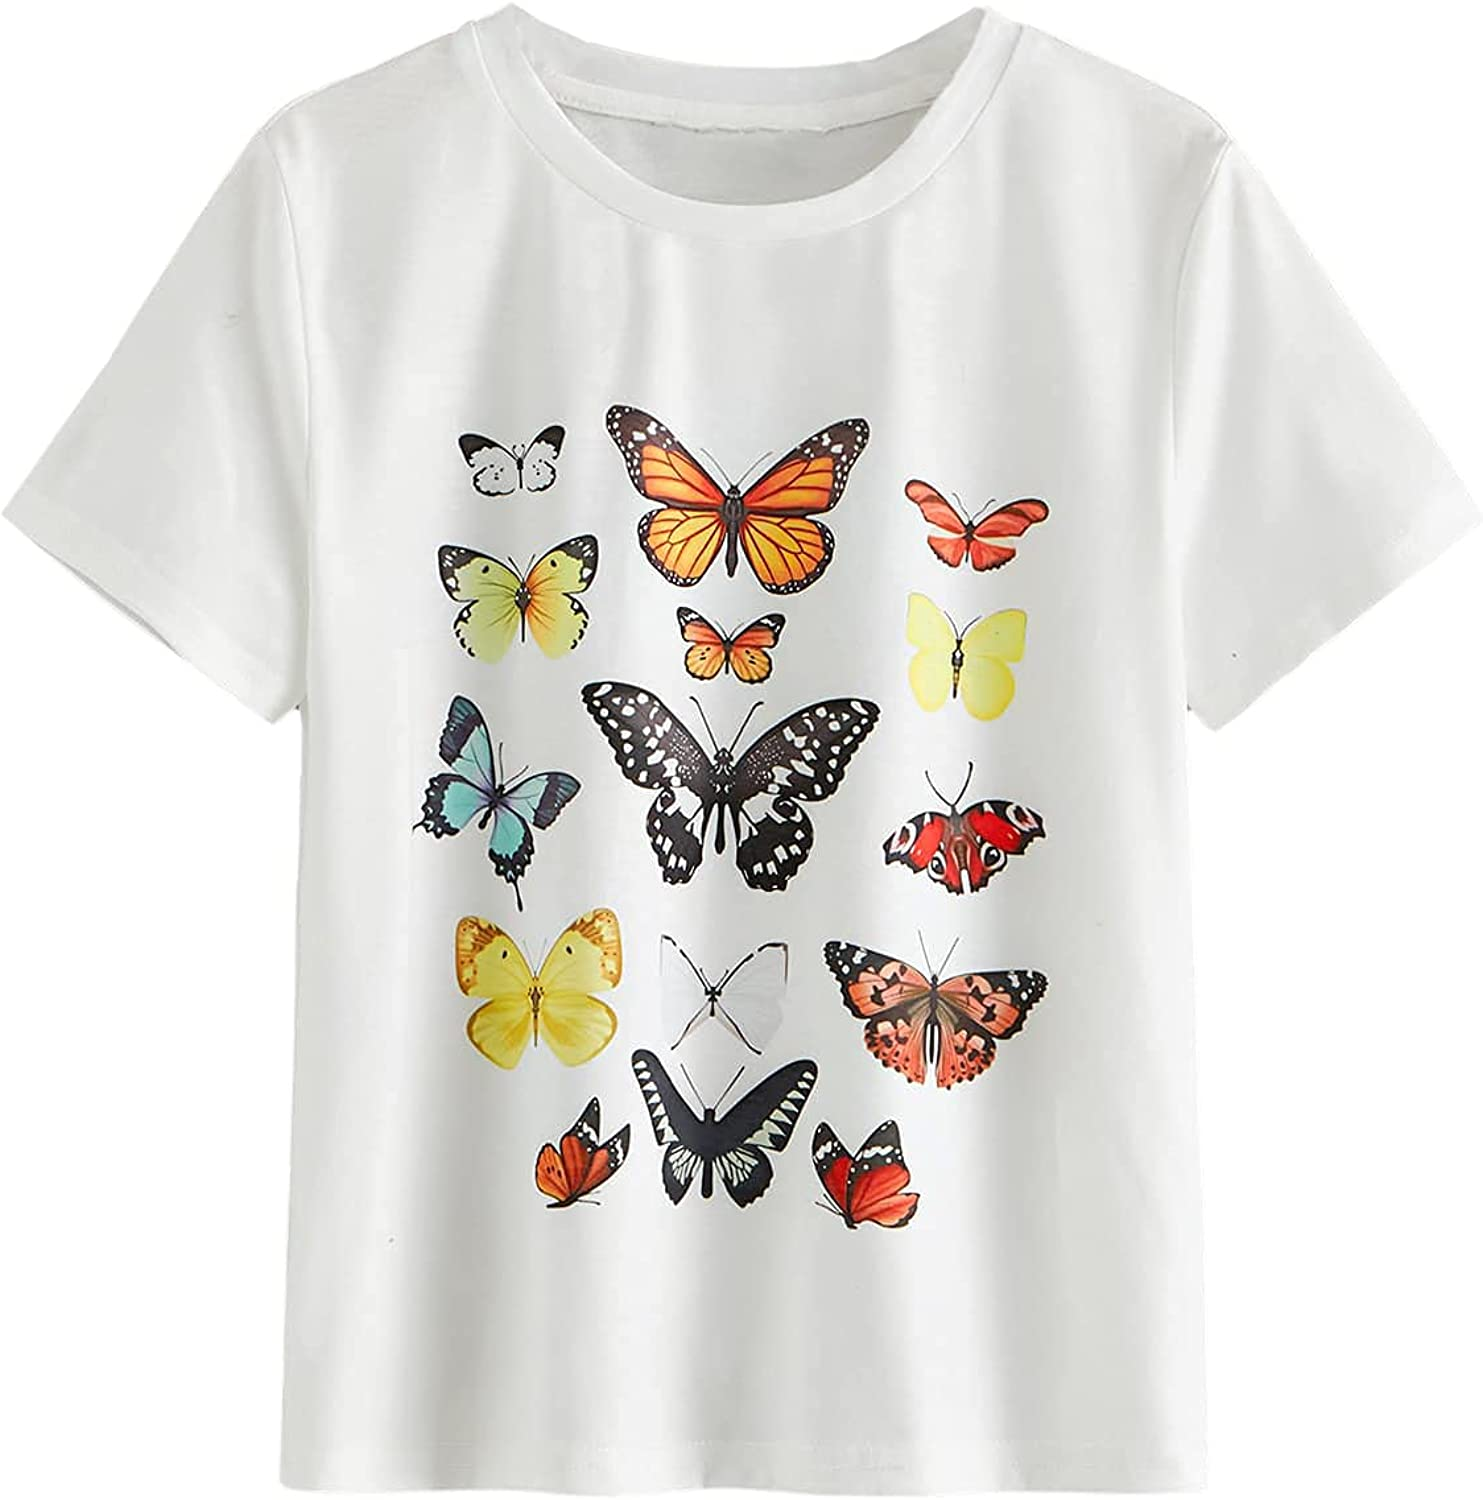 SOLY HUX Girl's Butterfly Print Short Sleeve Tee Casual T Shirt Top